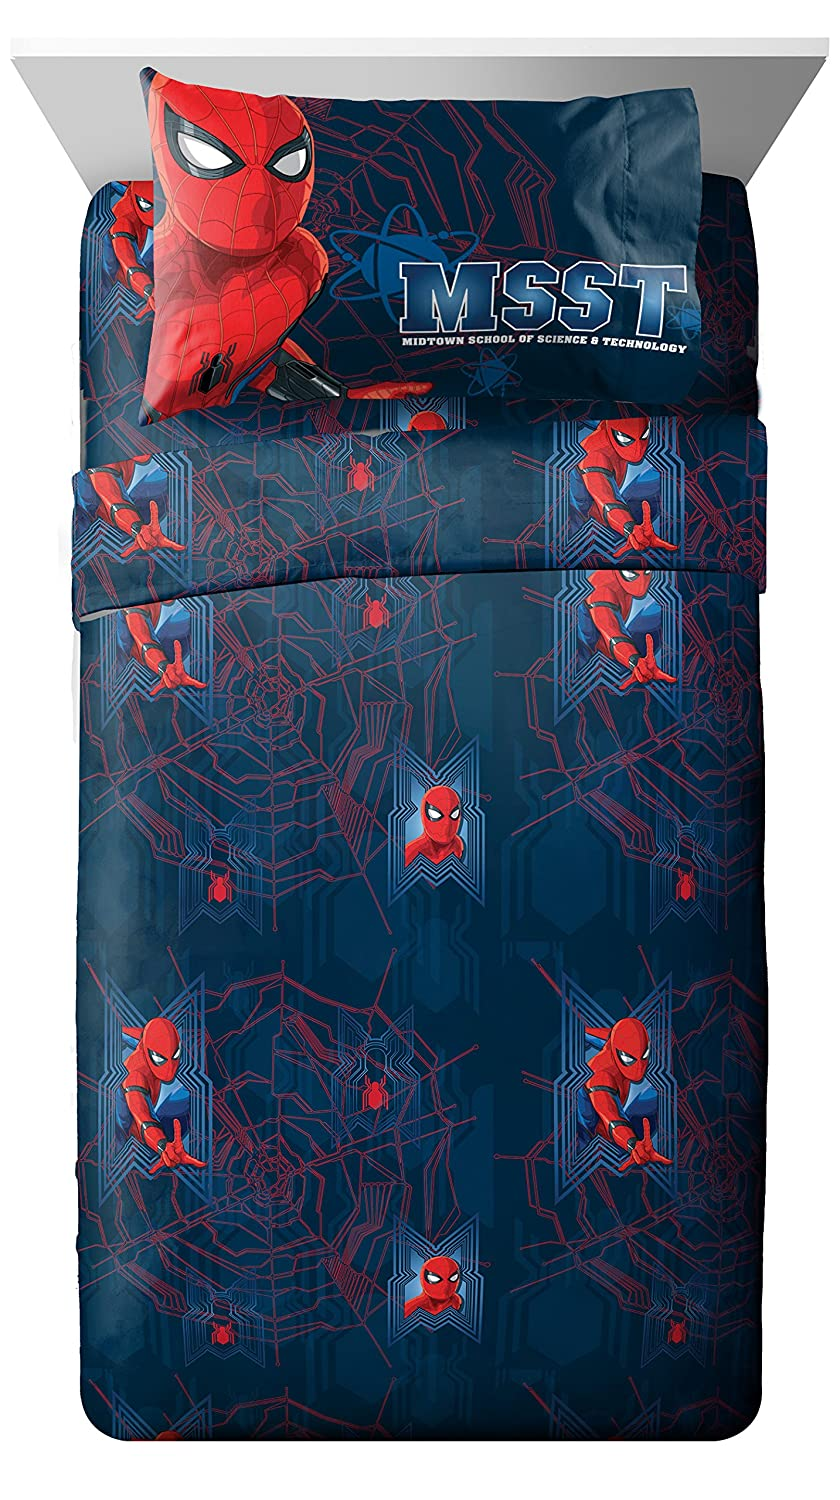 Marvel Spiderman Homecoming Attack 4 Piece Full Sheet Set, 4